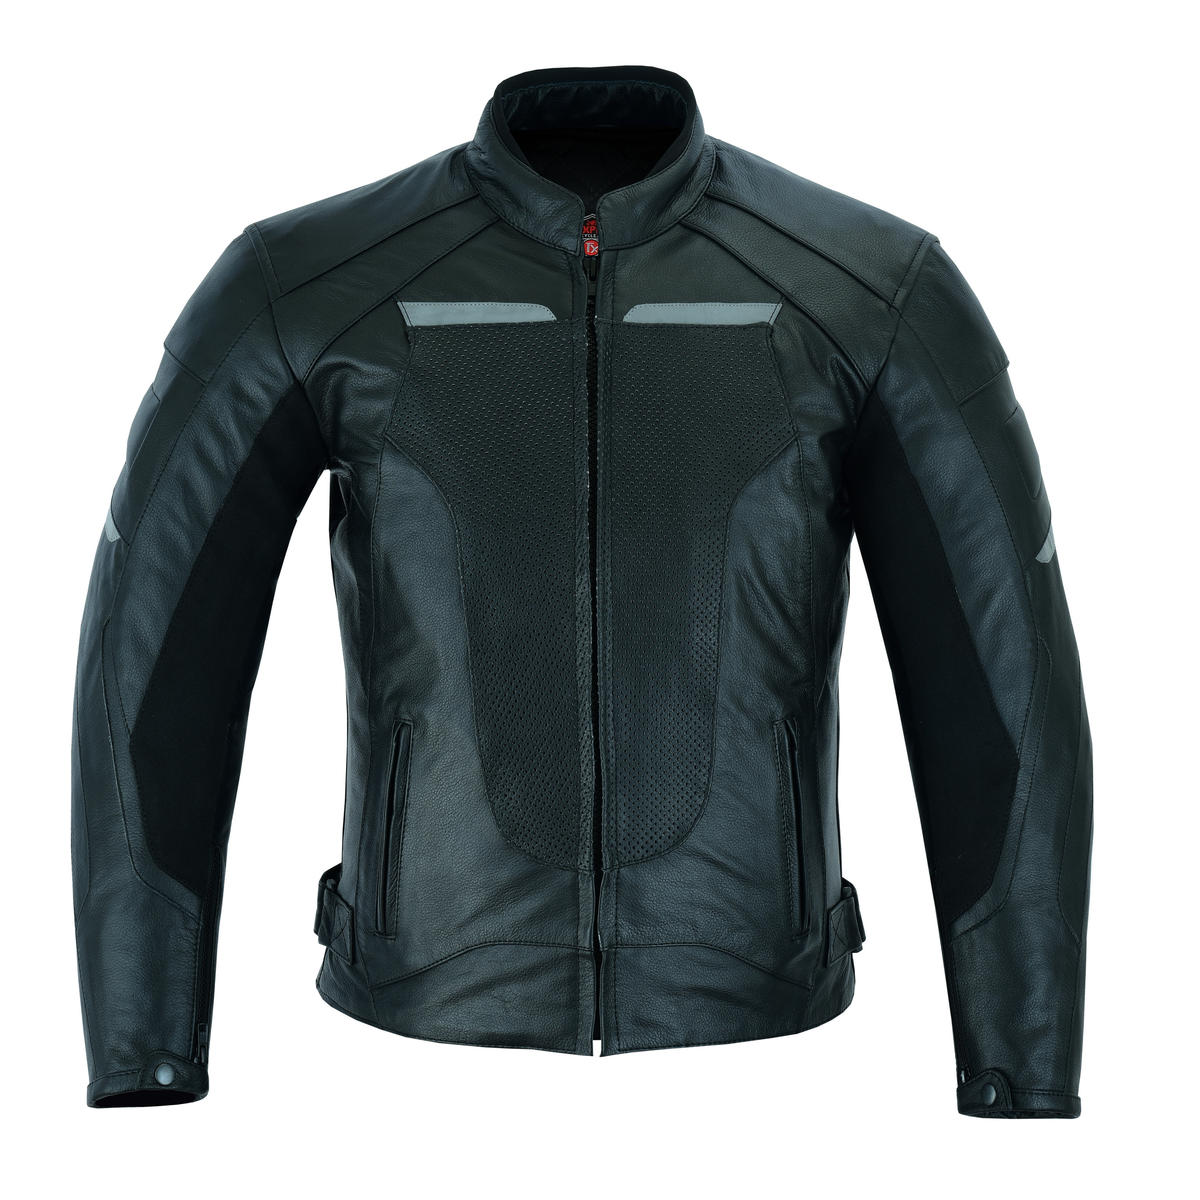 Texpeed Racing J20 Motorbike Jacket In Black